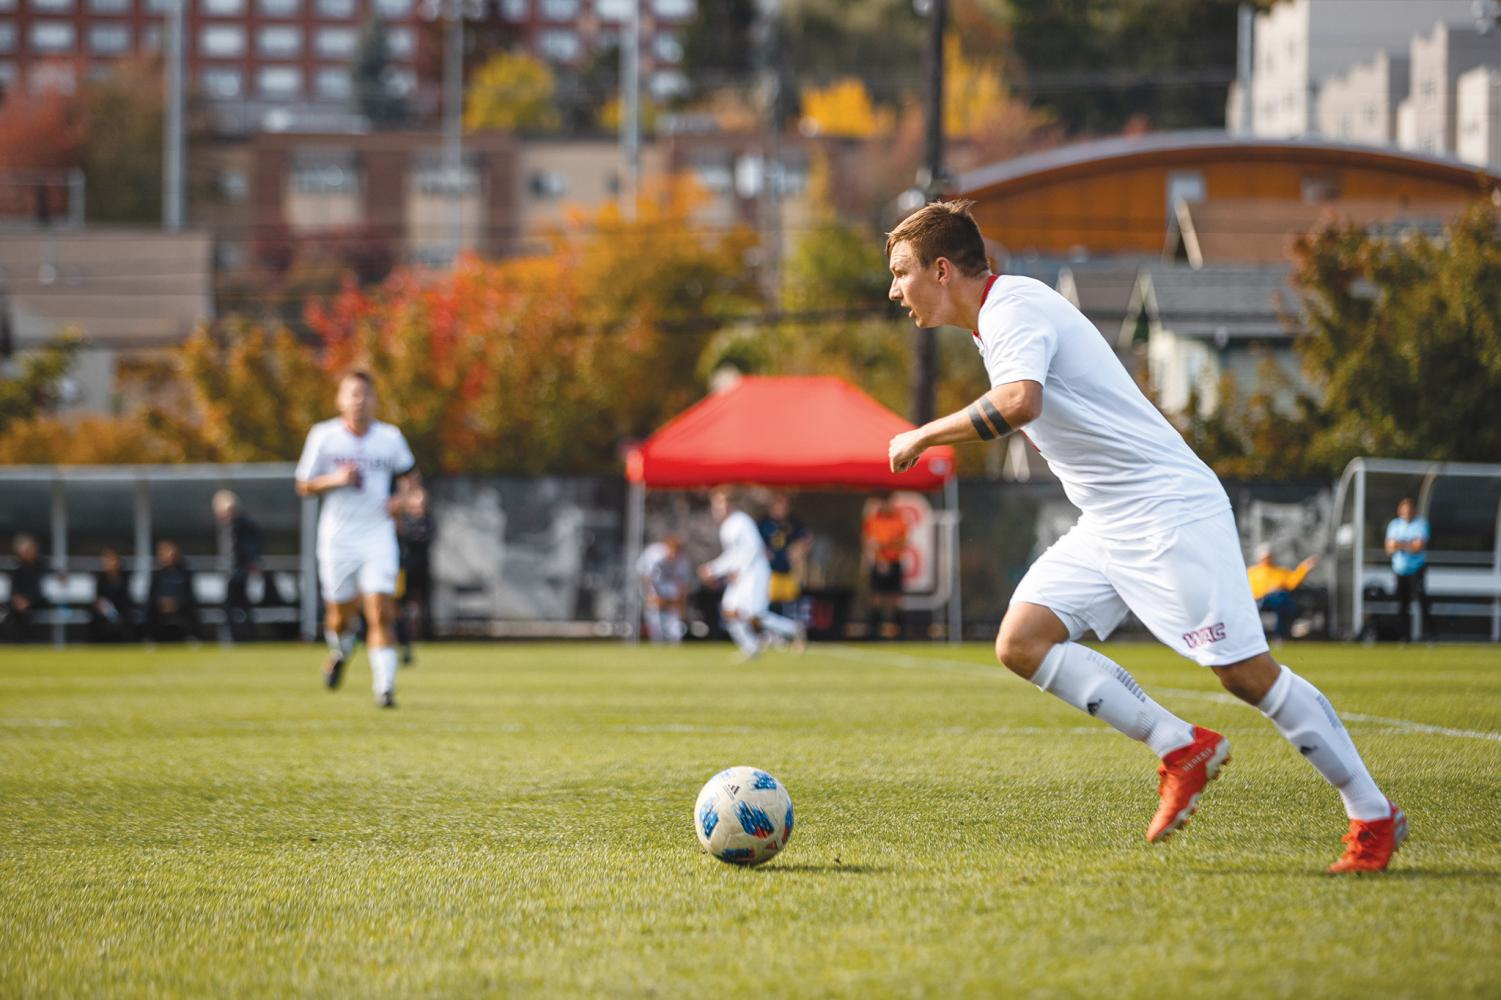 Defender Kees Westra in play during Sunday's match against Kansas City at Championship Field.